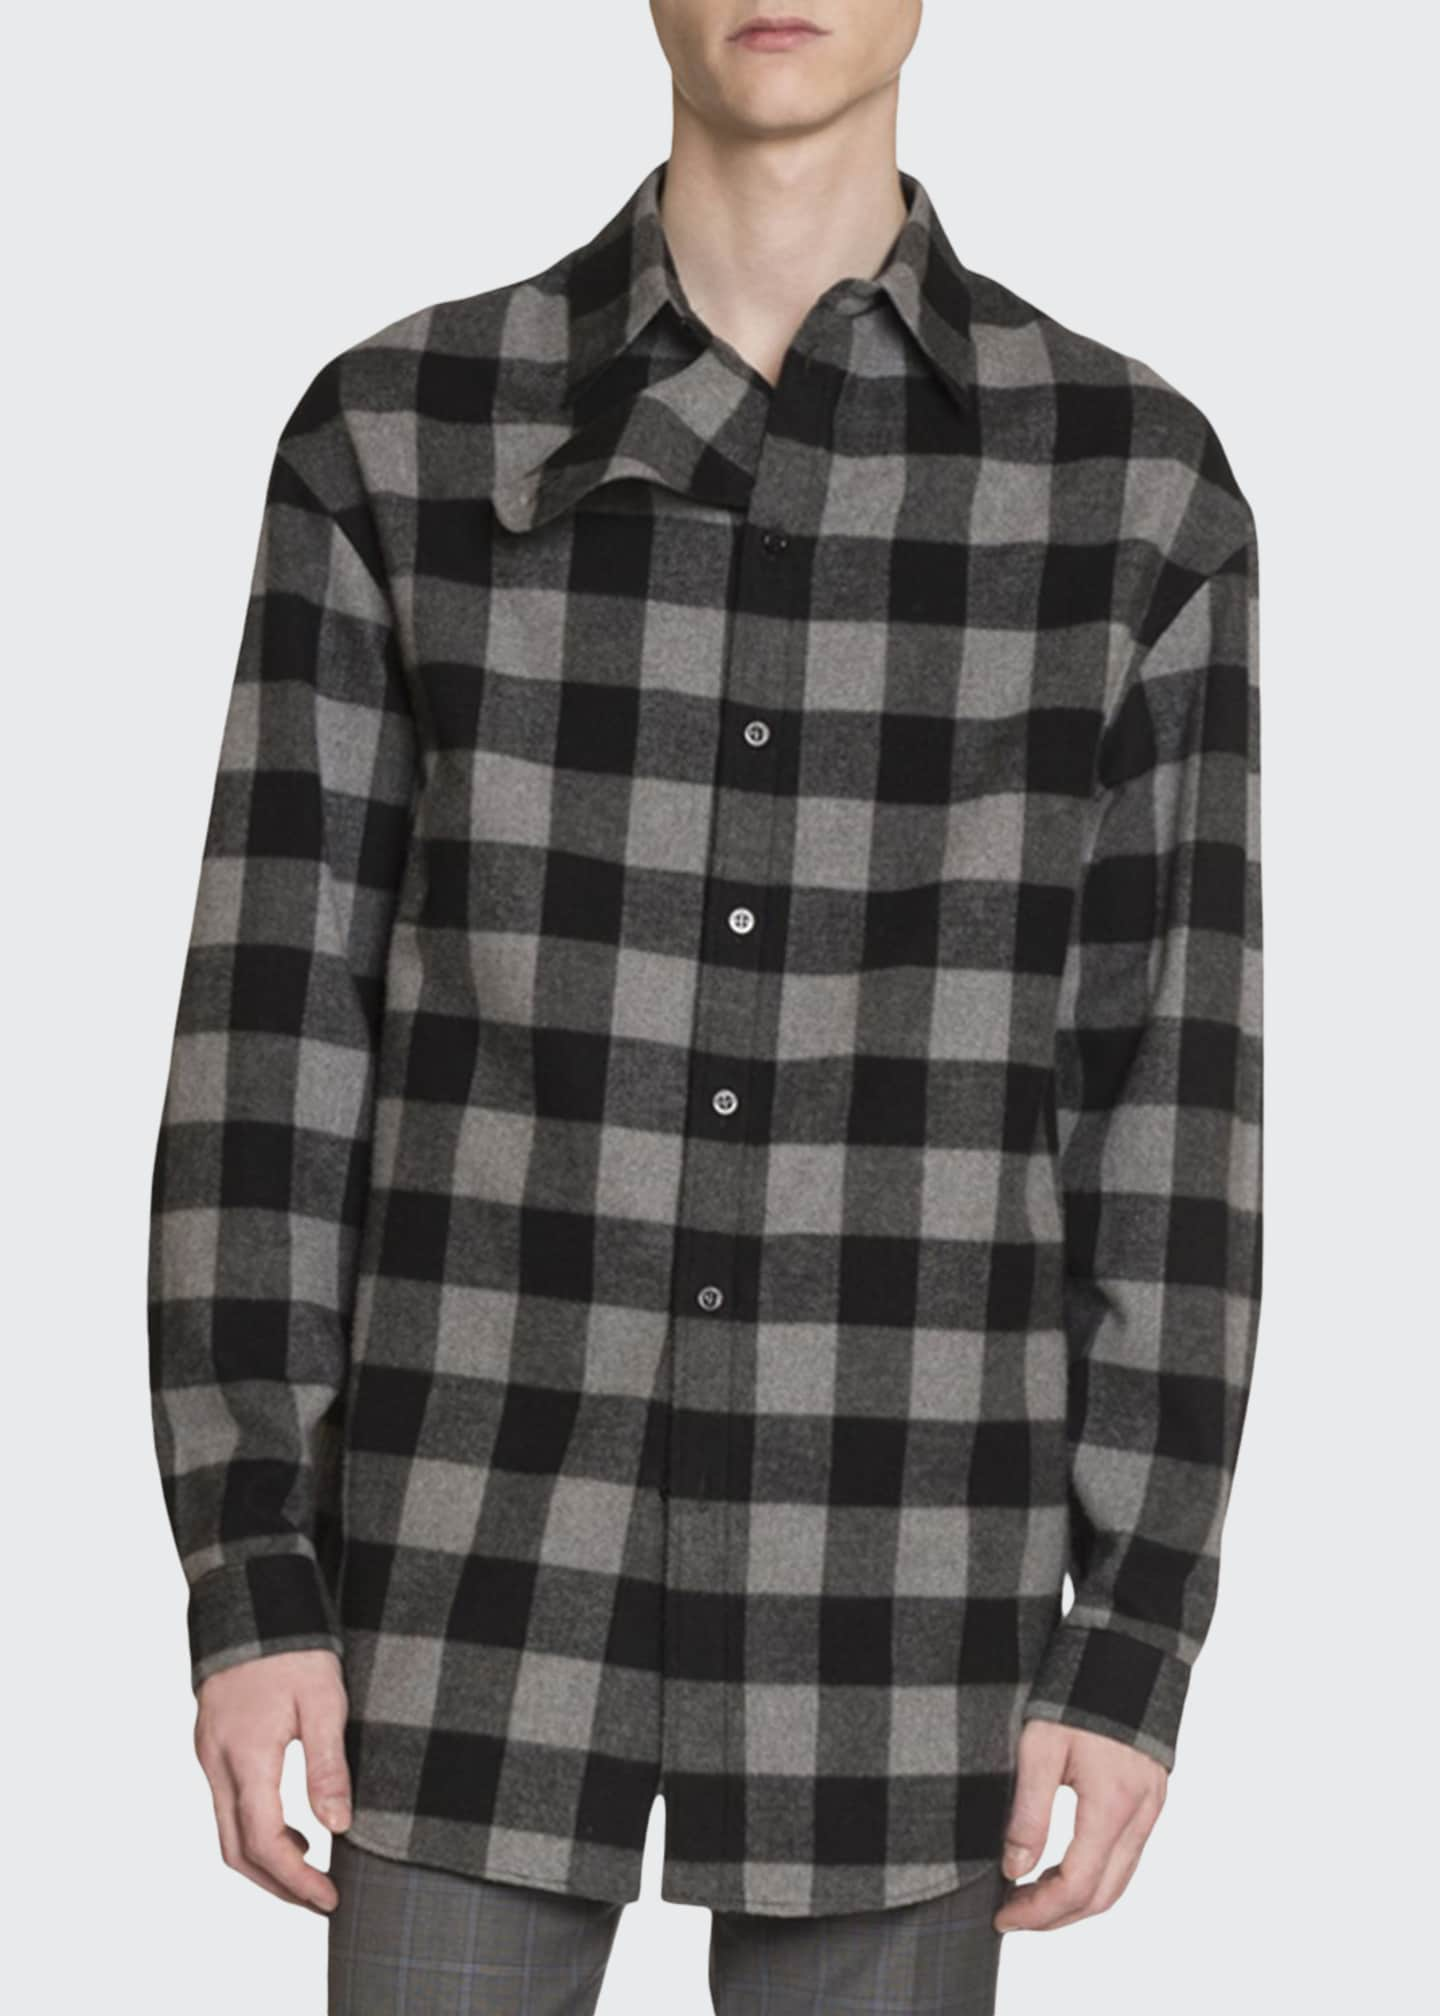 Balenciaga Men's Buffalo Check Flannel Oversized Shirt